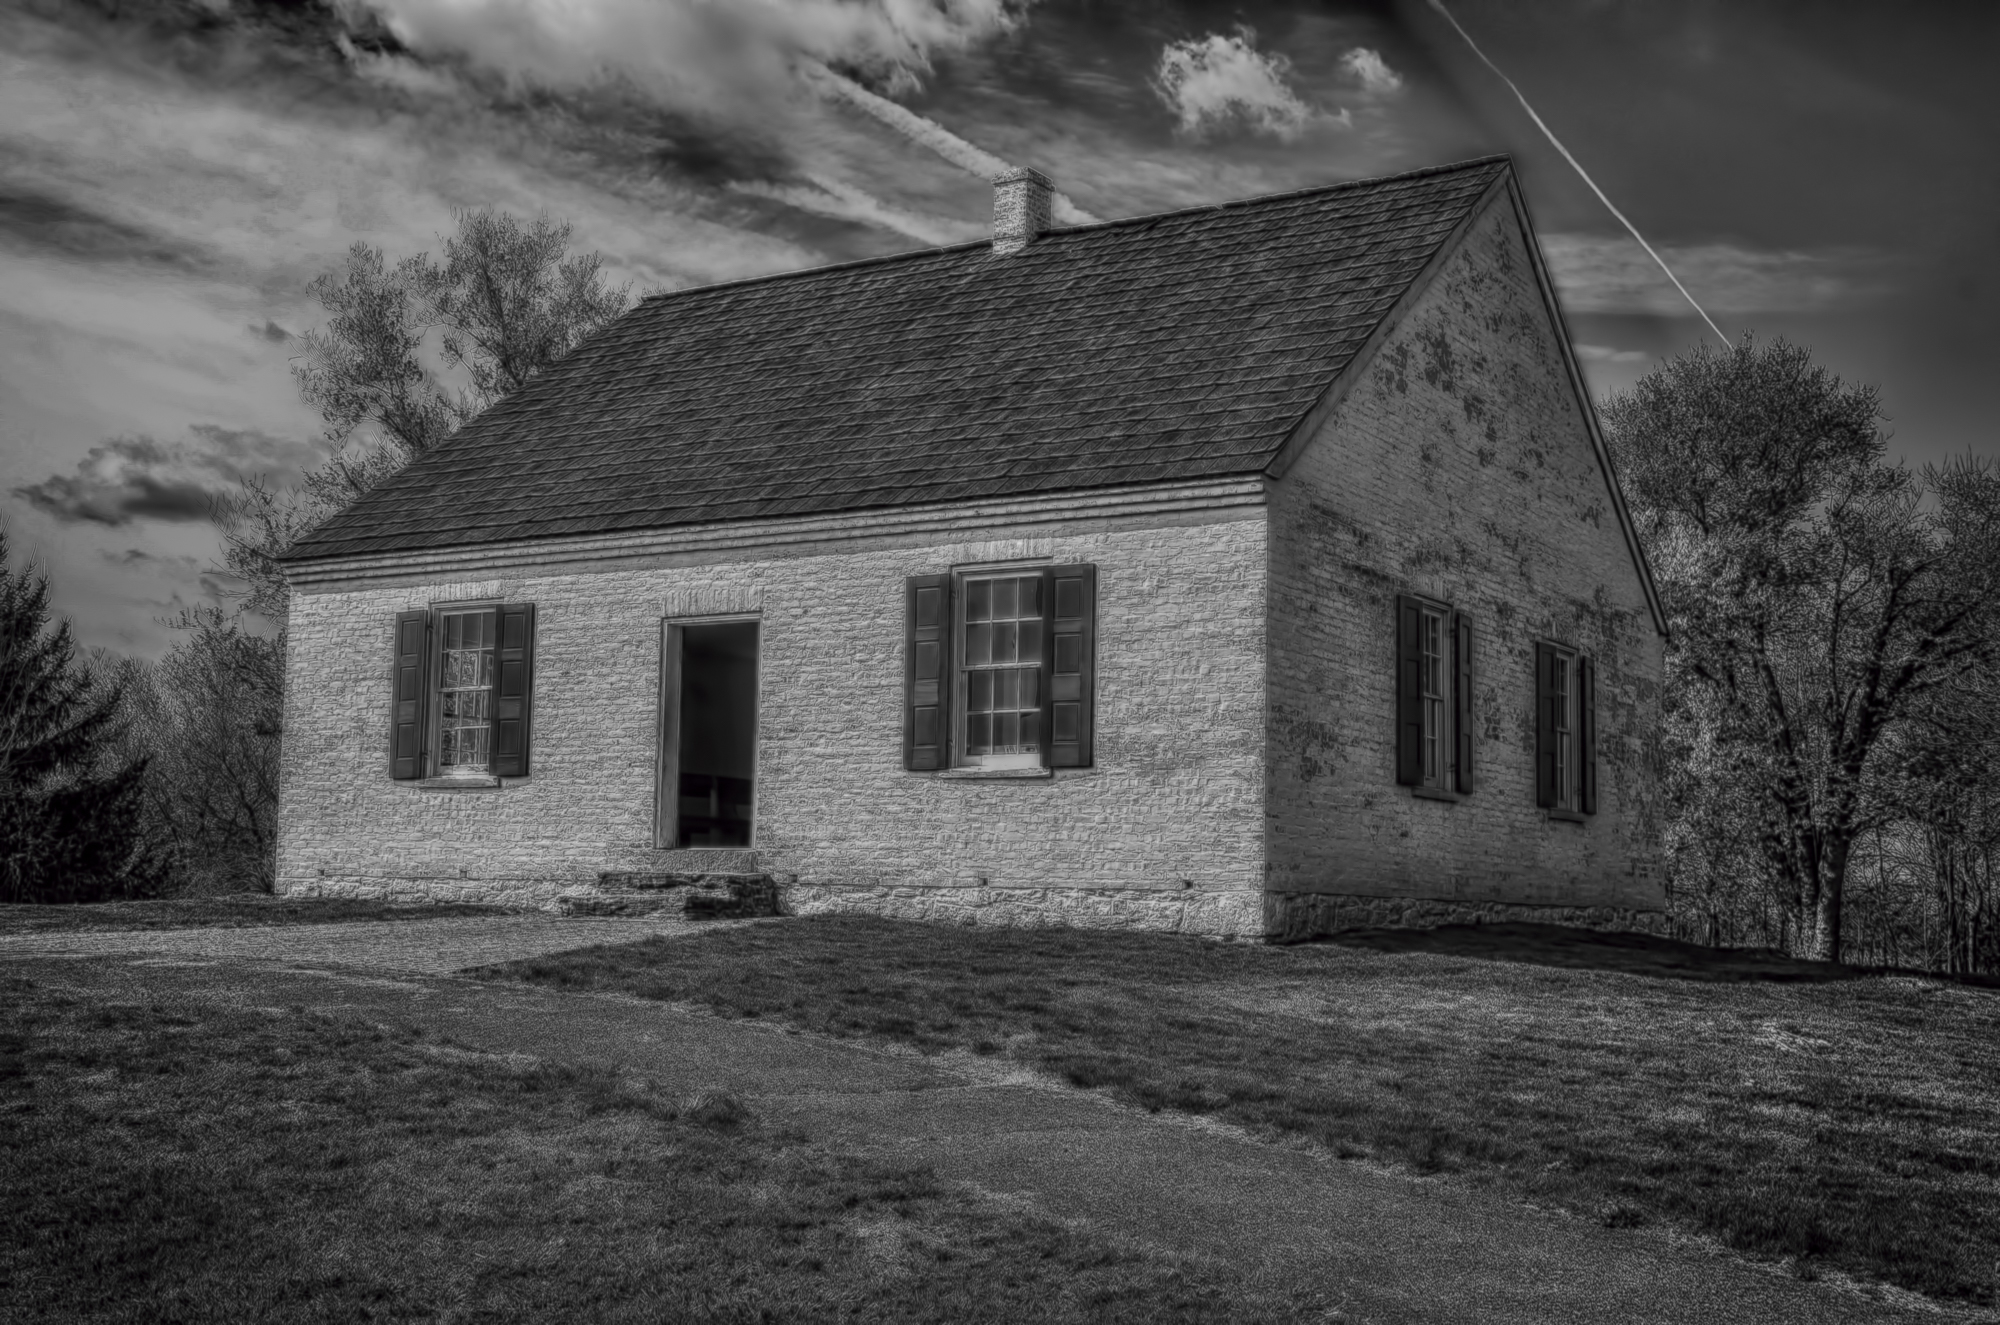 Dunker Church - Antietam National Battlefield - I have had a fascination with the American Civil War since I was a young boy. I have been to Gettysburg more times than I can remember. My bookshelves at home are stacked with Civil War history. I have been on bus tours, attended seminars and created and taught a high school course on the war. The poem you are about to read pertains to my second favorite battlefield site; Antietam. I am proud to say that I have donated money to the Civil War Preservation Trust (of which I am a member) to help save a portion of this sacred ground from development. My oldest son began his professional career here as a member of the National Park Service. So, like Gettysburg, I have walked this battlefield on many occasions. I believe that Antietam, not Gettysburg, was the turning point of the Civil War. Above all tactical and strategic considerations, the battle changed the meaning of the war. After all, Antietam gave us the Emancipation Proclamation. The battle unfolded in three distinct phases; morning, mid-day and afternoon. Each phase centered around a landmark you can still visit today. The Dunker Church (above) for the morning phase, a sunken lane for the mid-day phase, and finally closing around a bridge that became known to history as Burnside's Bridge. Lincoln did visit the battlefield shortly after its conclusion. The poem Antietam Creek follows the course of the battle including Lincoln's visit.